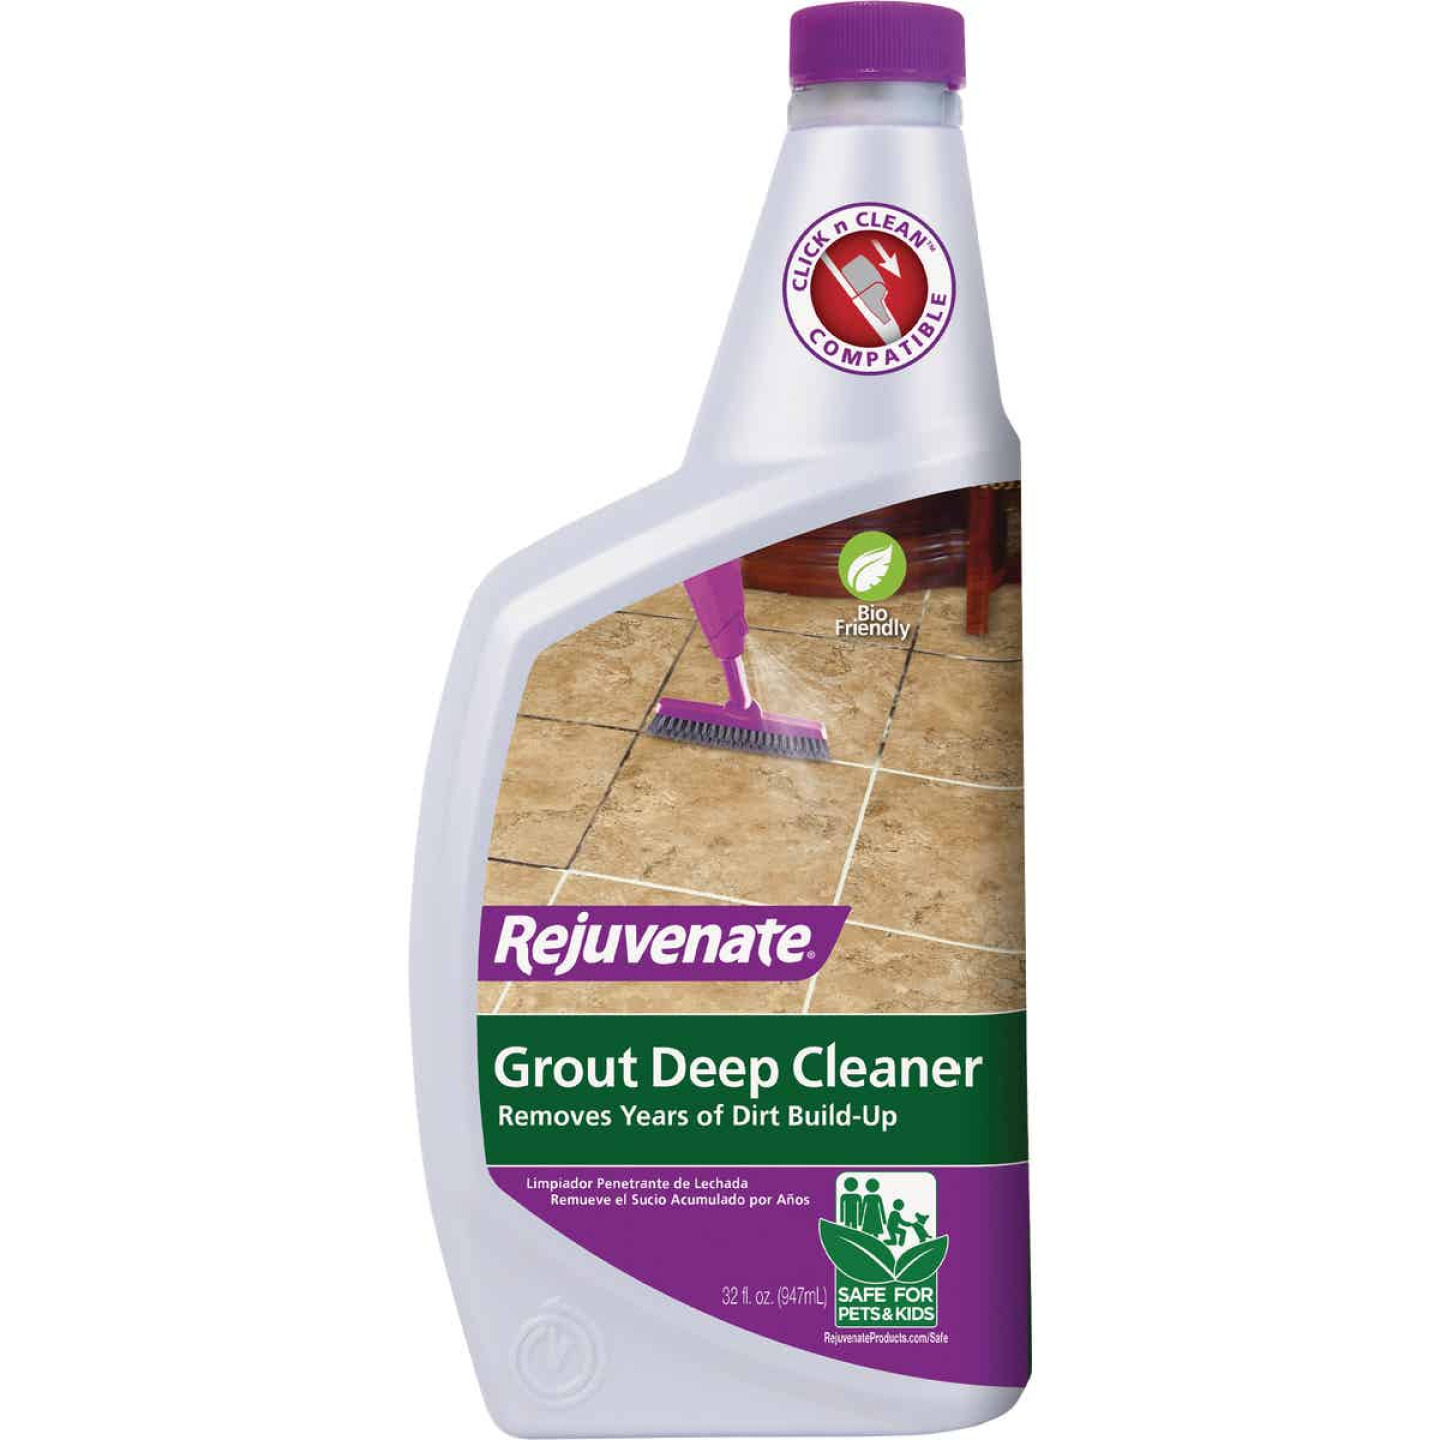 Rejuvenate 32 Oz. Deep Grout Cleaner Image 1